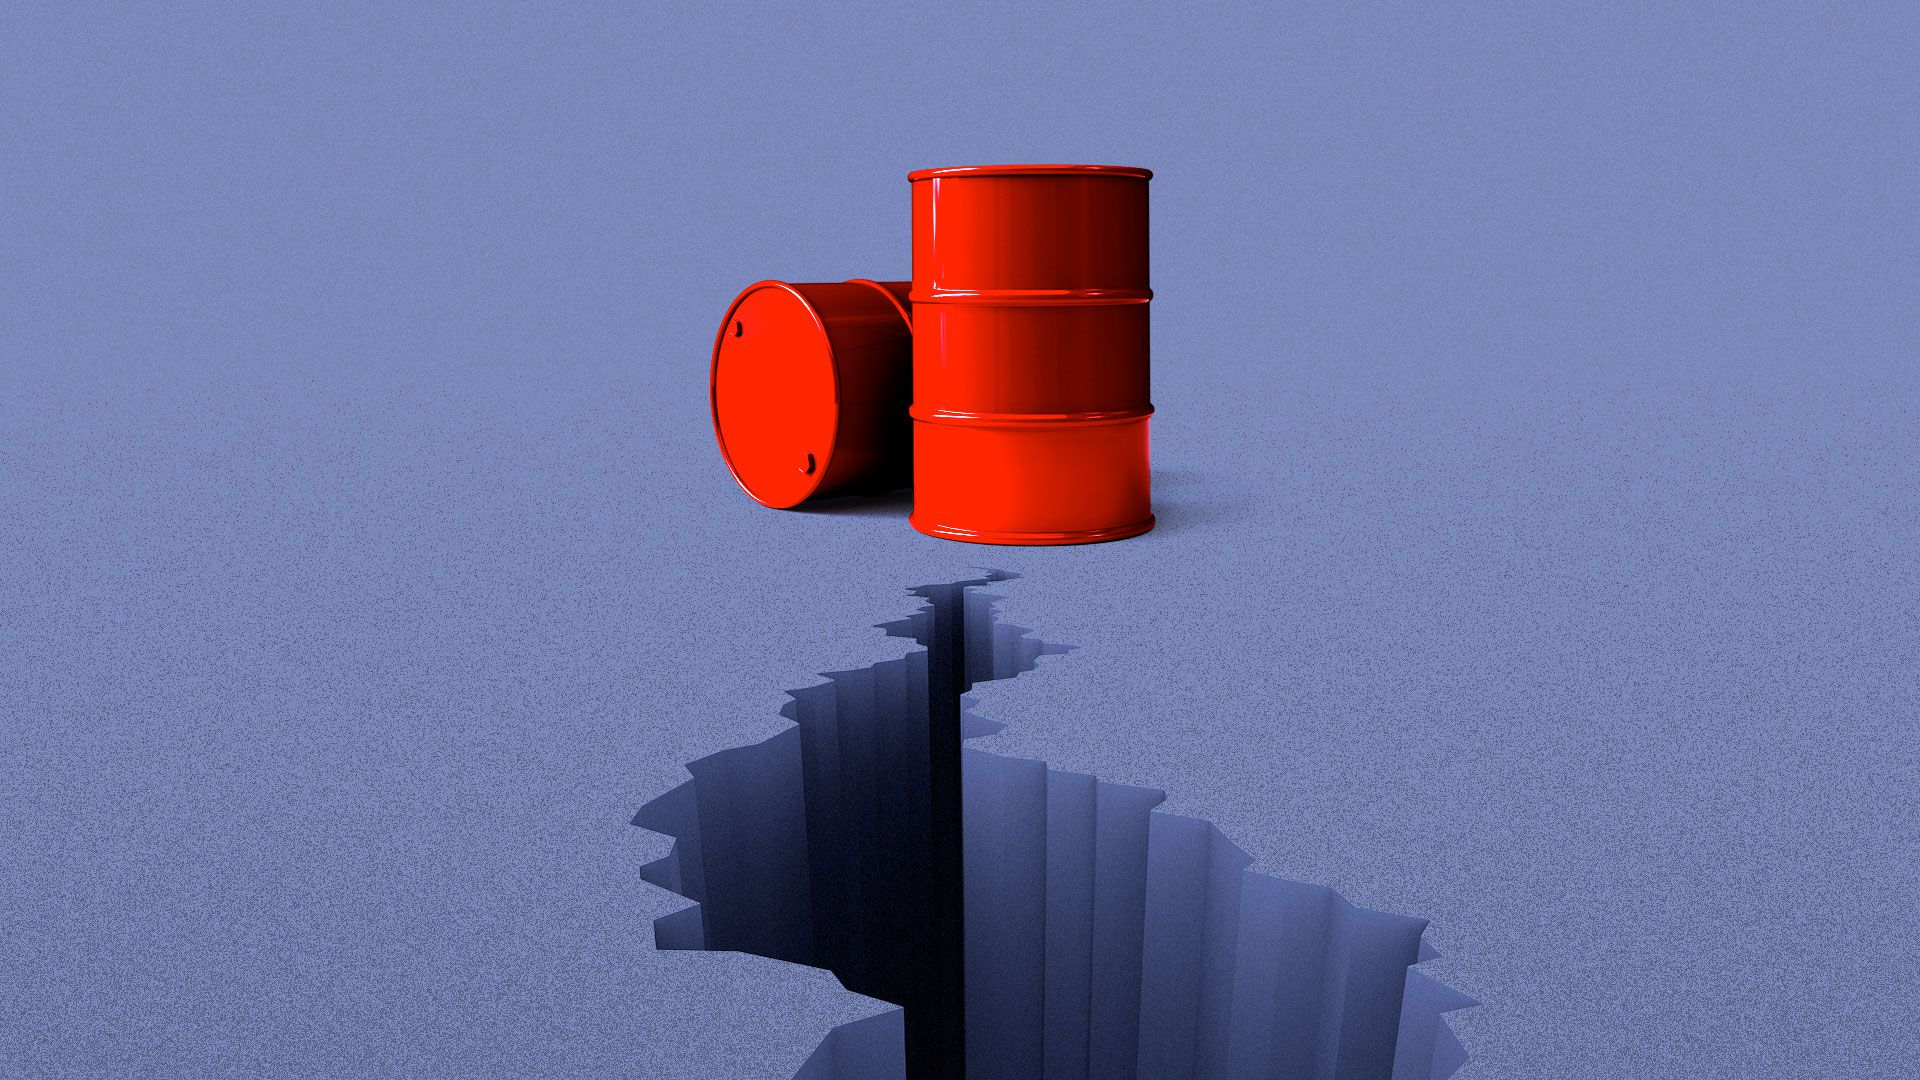 Illustration of a fissure in the ground opening up towards barrels of oil.